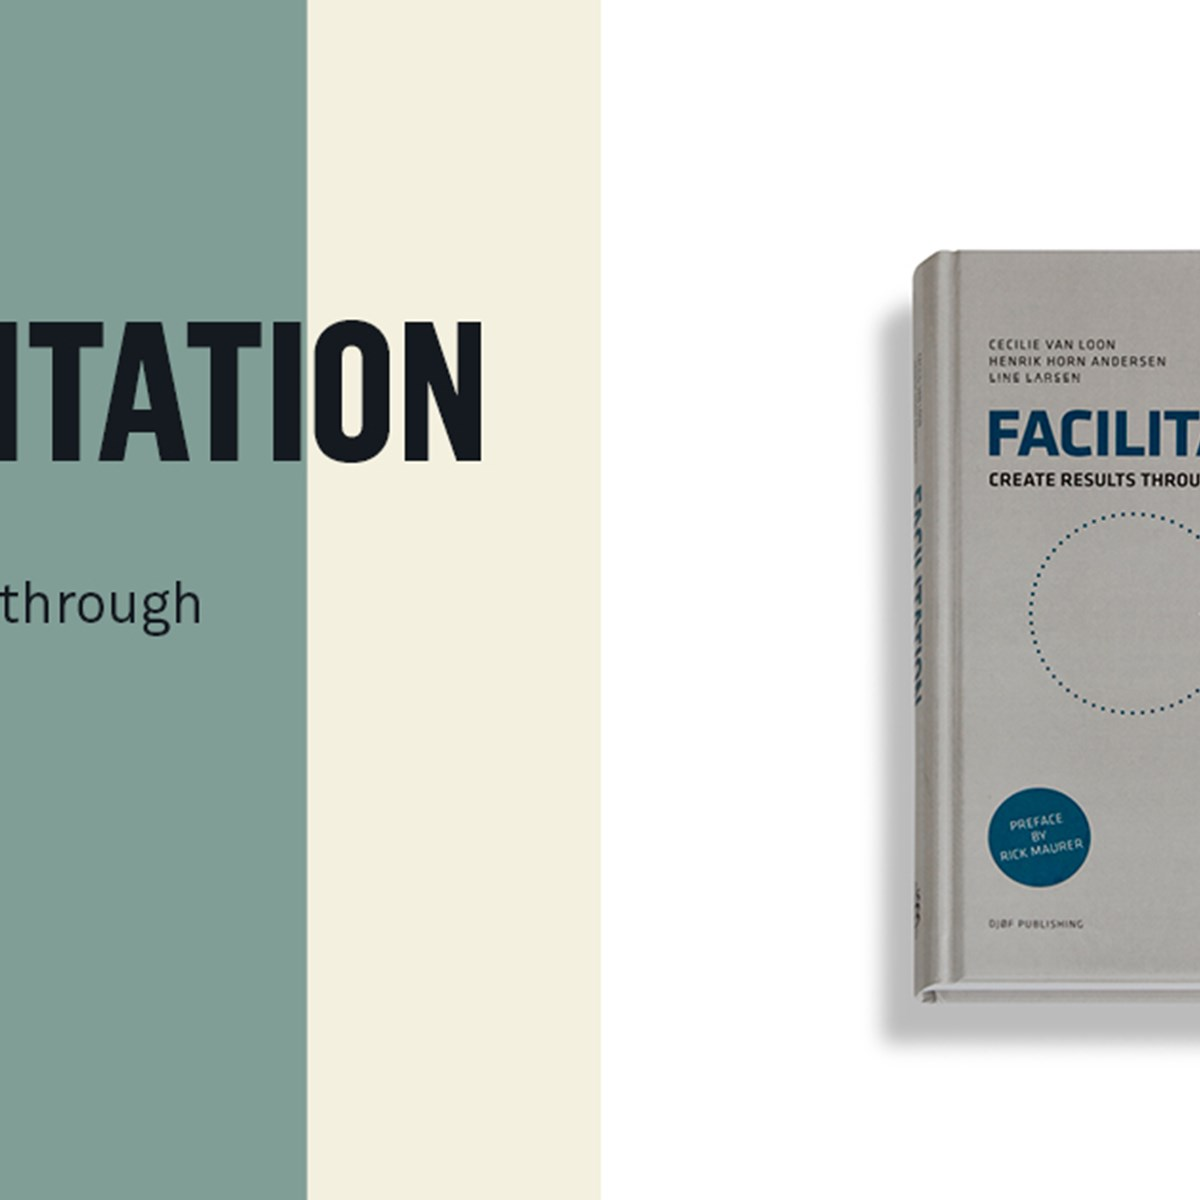 Facilitation: Create impact through involvement